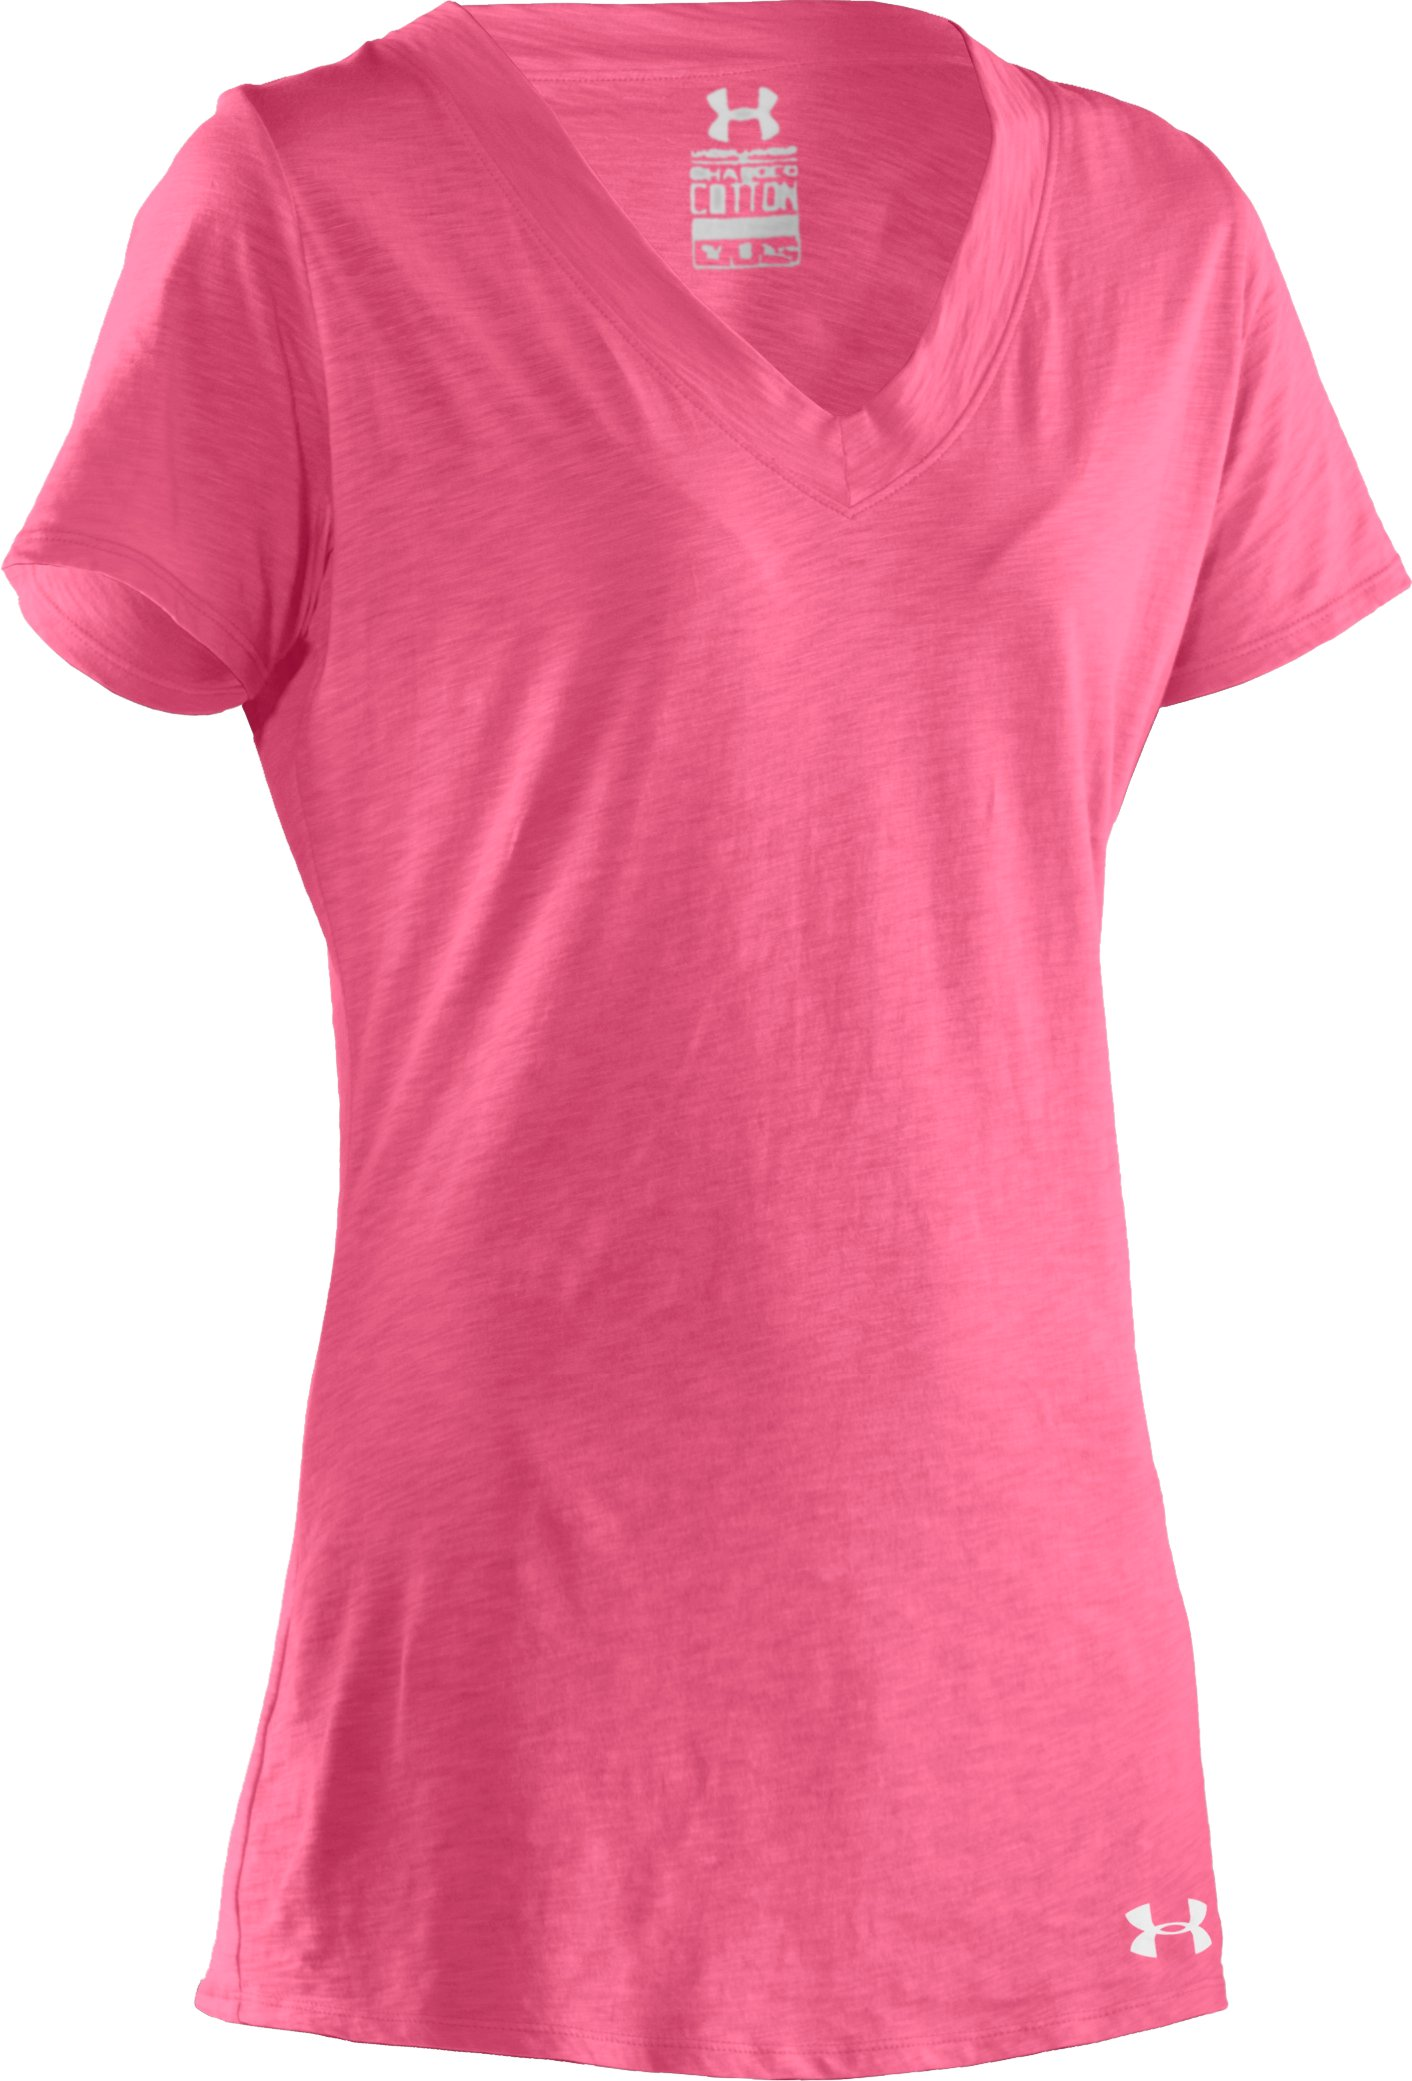 Women's Charged Cotton® Slub T-Shirt, Ultra